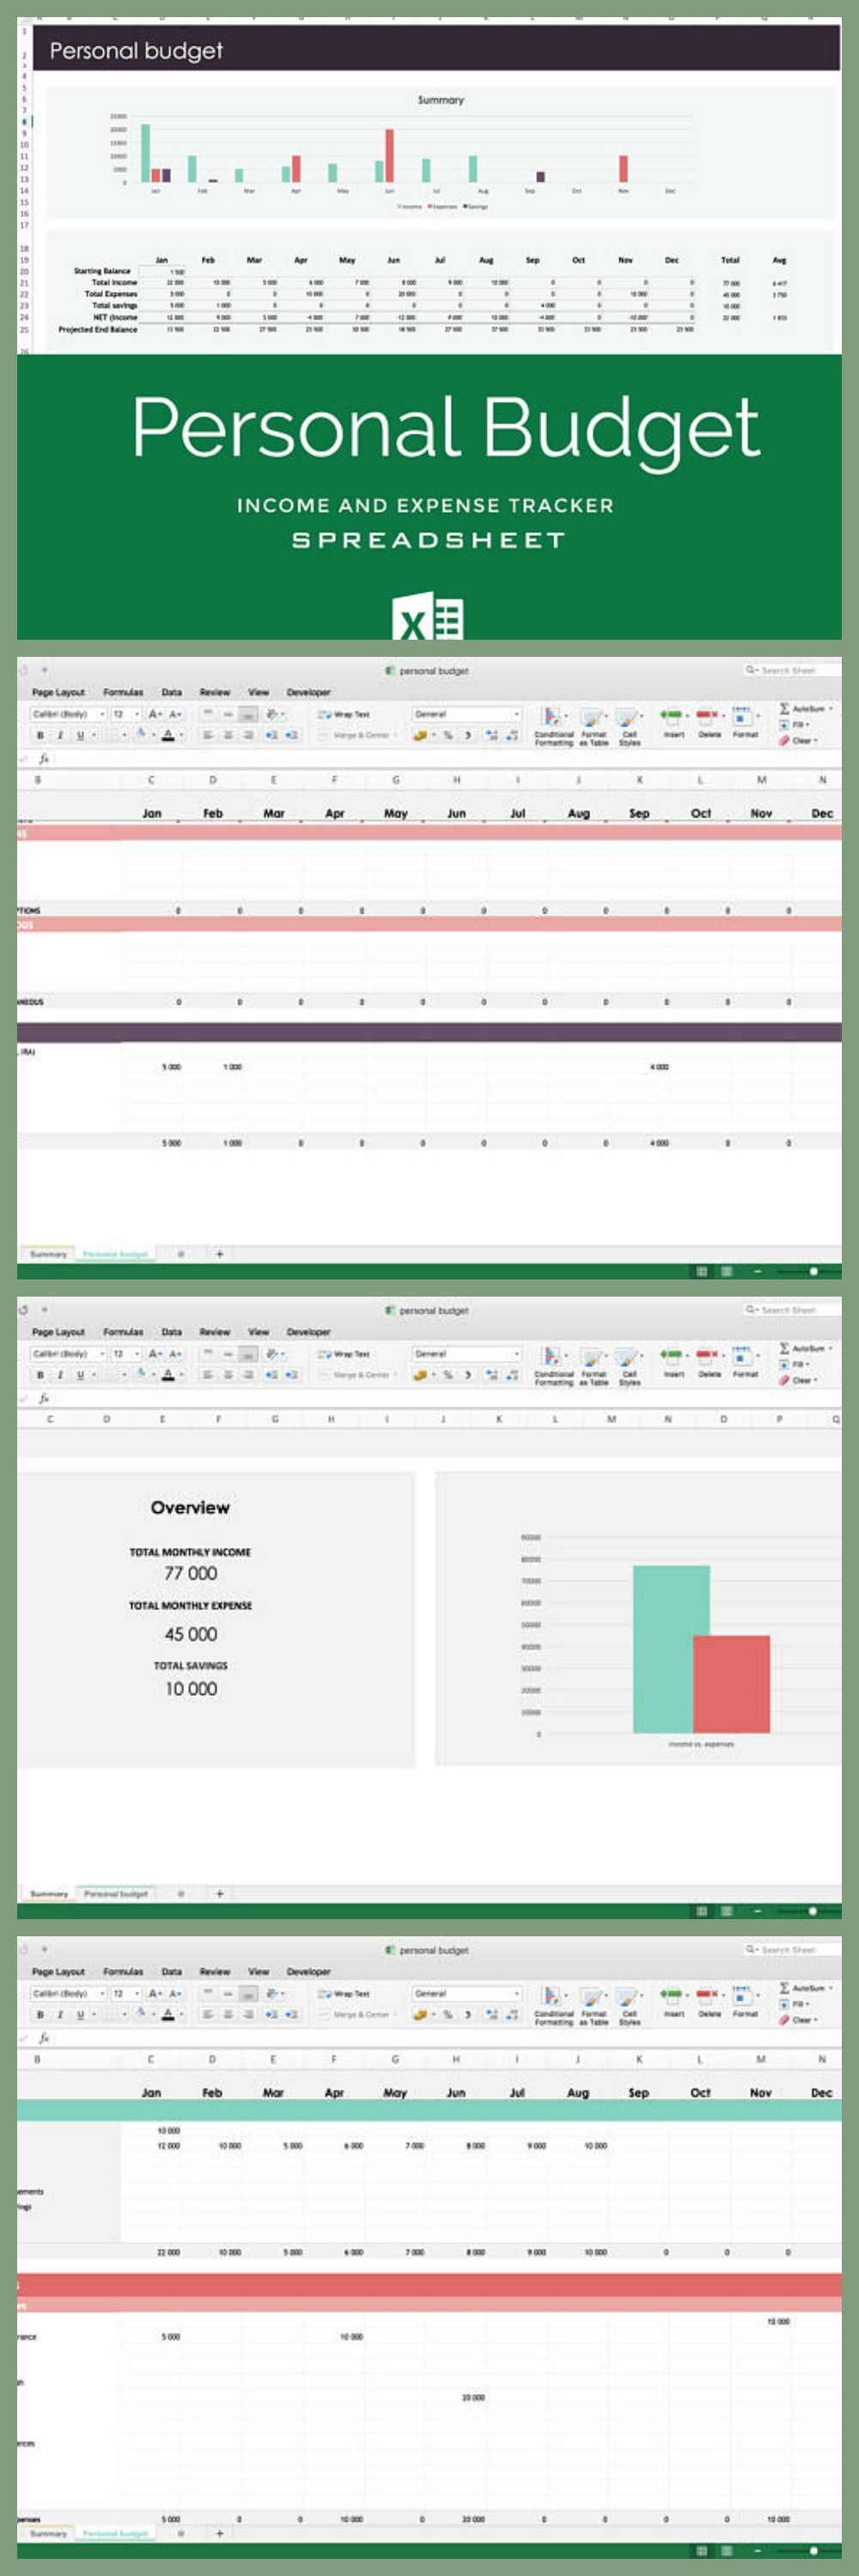 budget spreadsheet excel template for personal budget home finance spending calculator ad